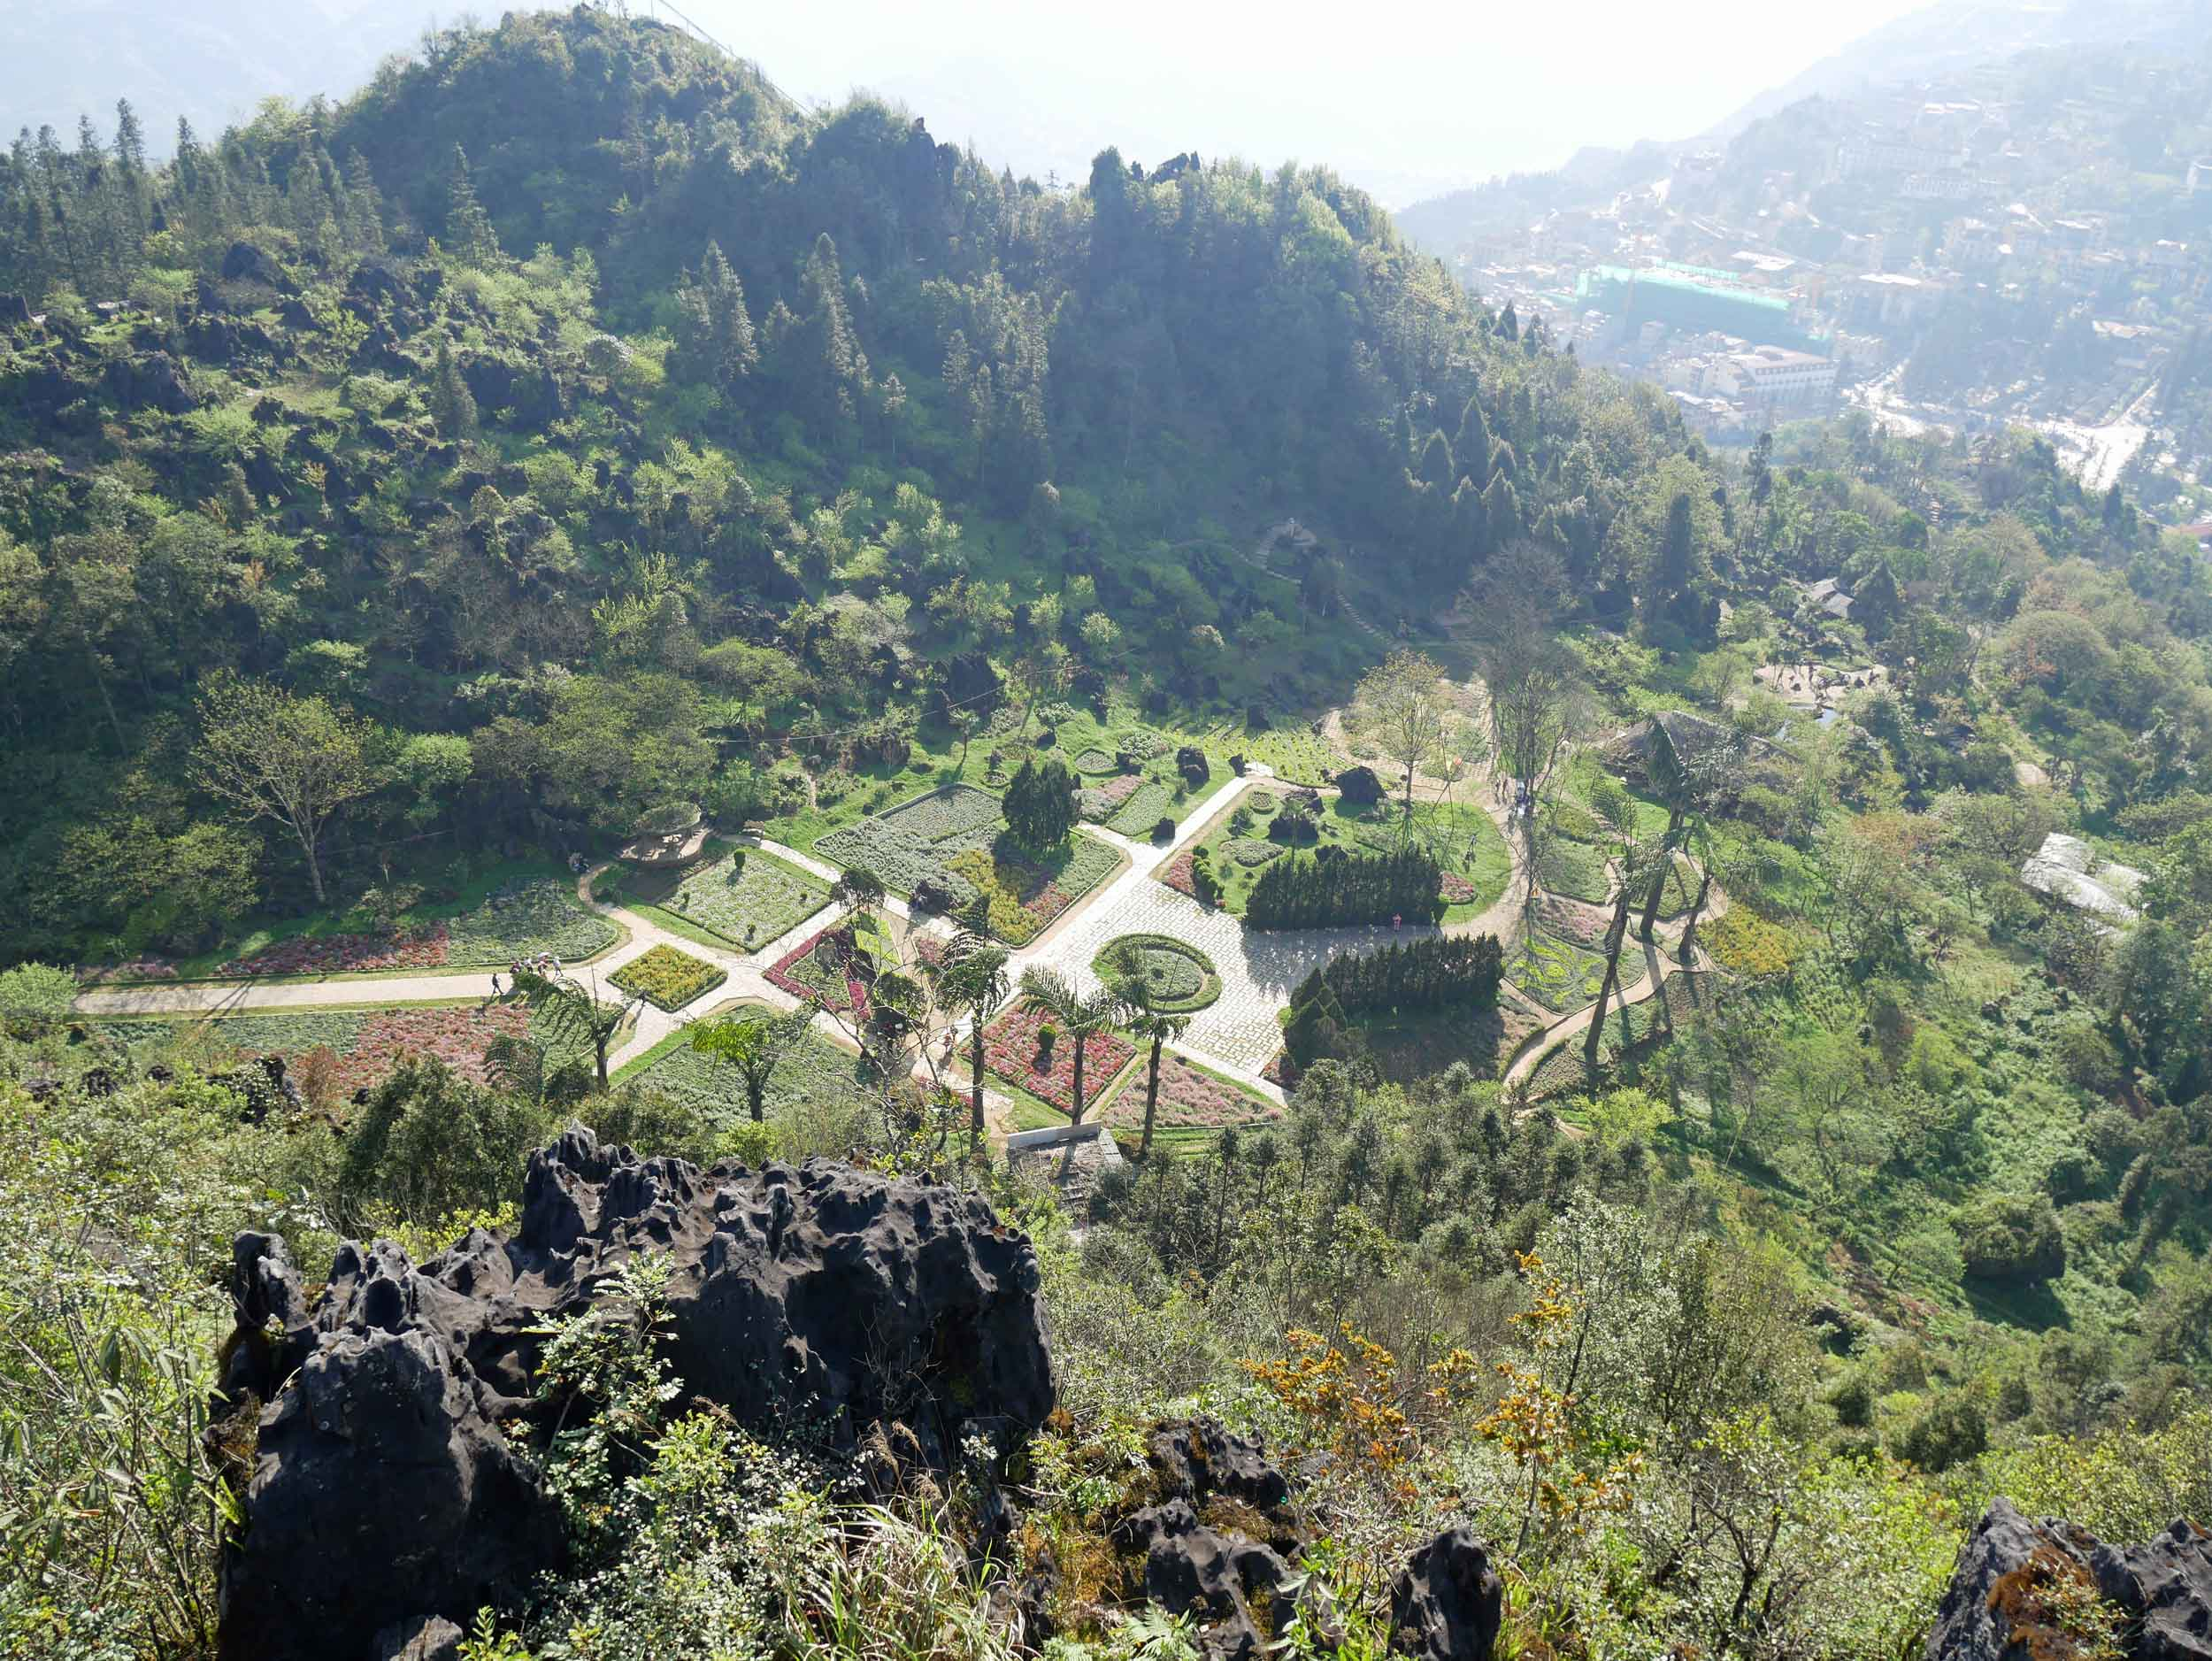 View from above of the garish and ornate Ham Rong Mountain park in Sapa (Mar 22).